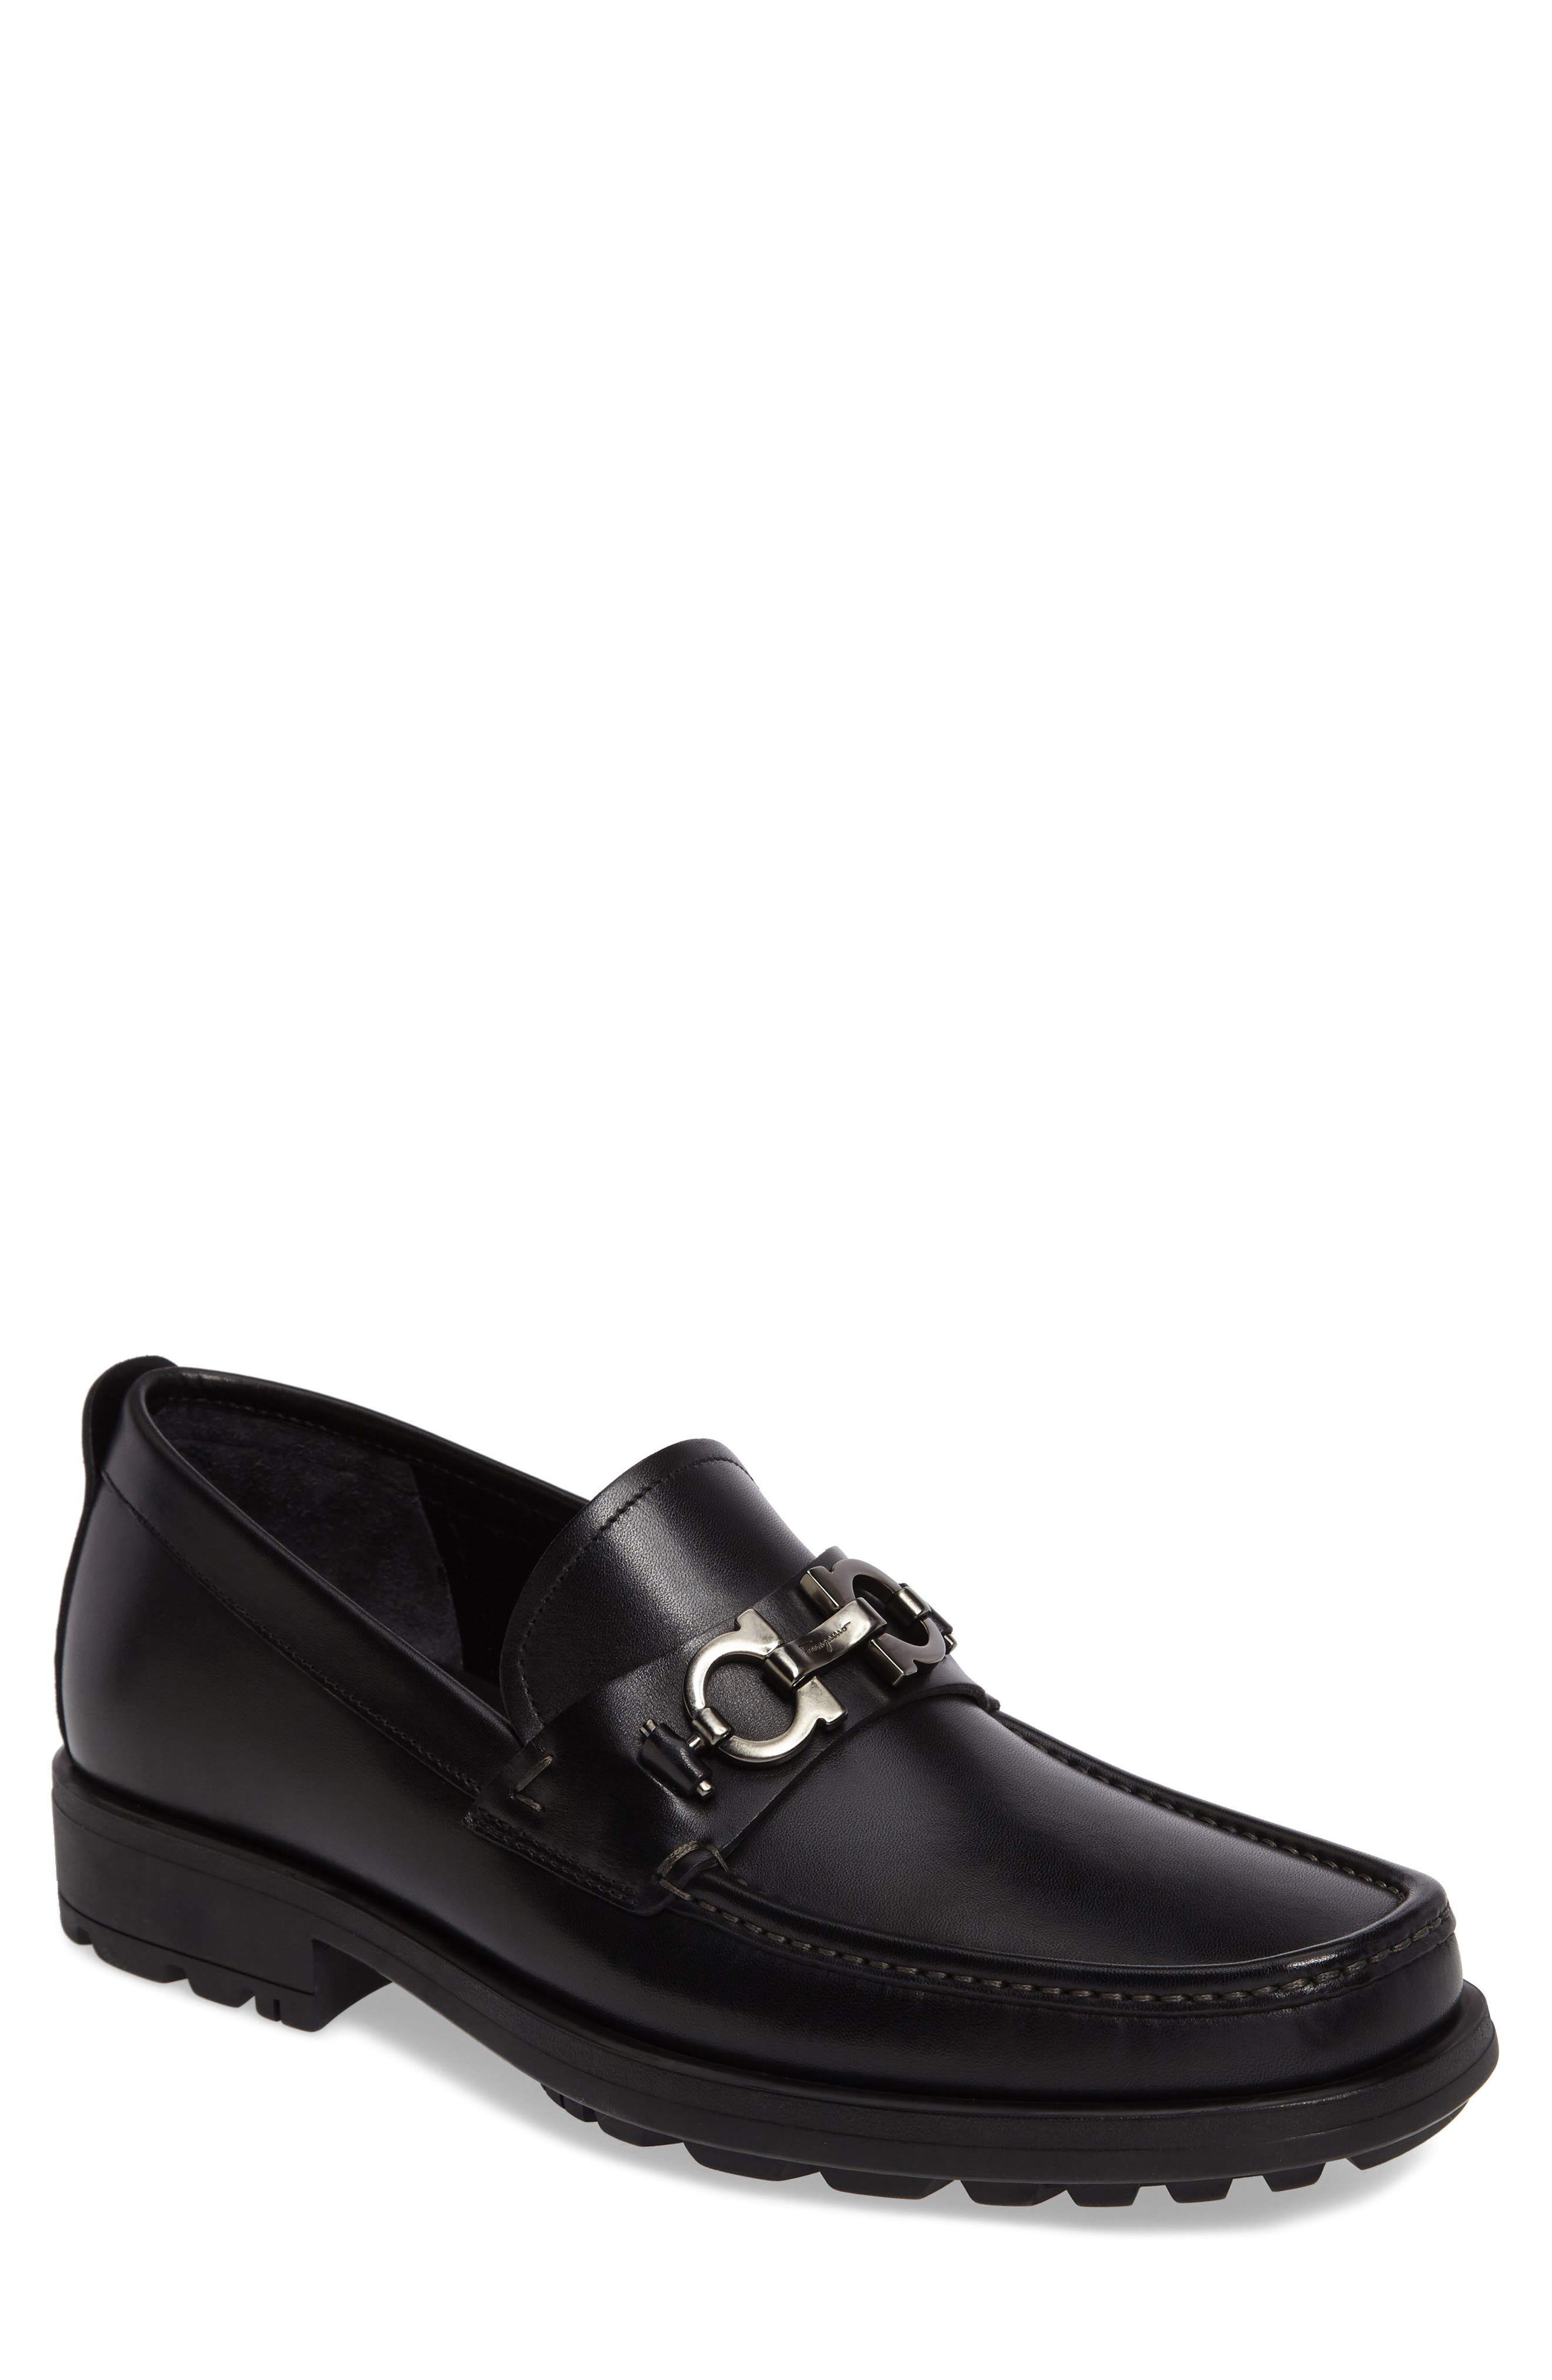 David Bit Loafer,                         Main,                         color, BLACK LEATHER